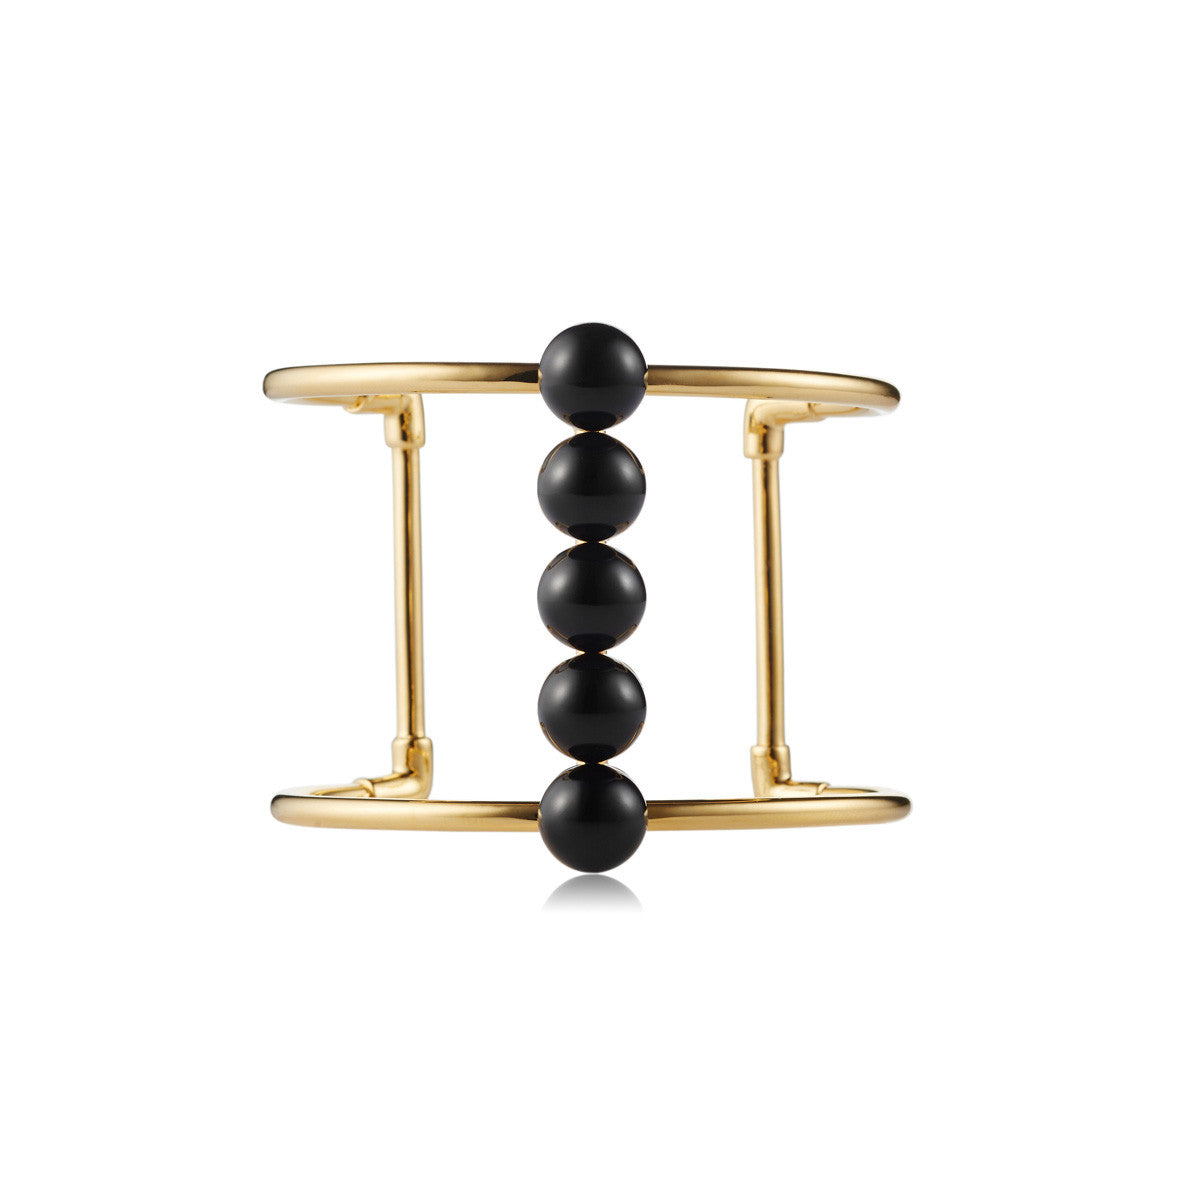 Solid brass, 18K gold plated Moonraker cuff bangle features a bold line of natural black onyx spheres along the centre – front